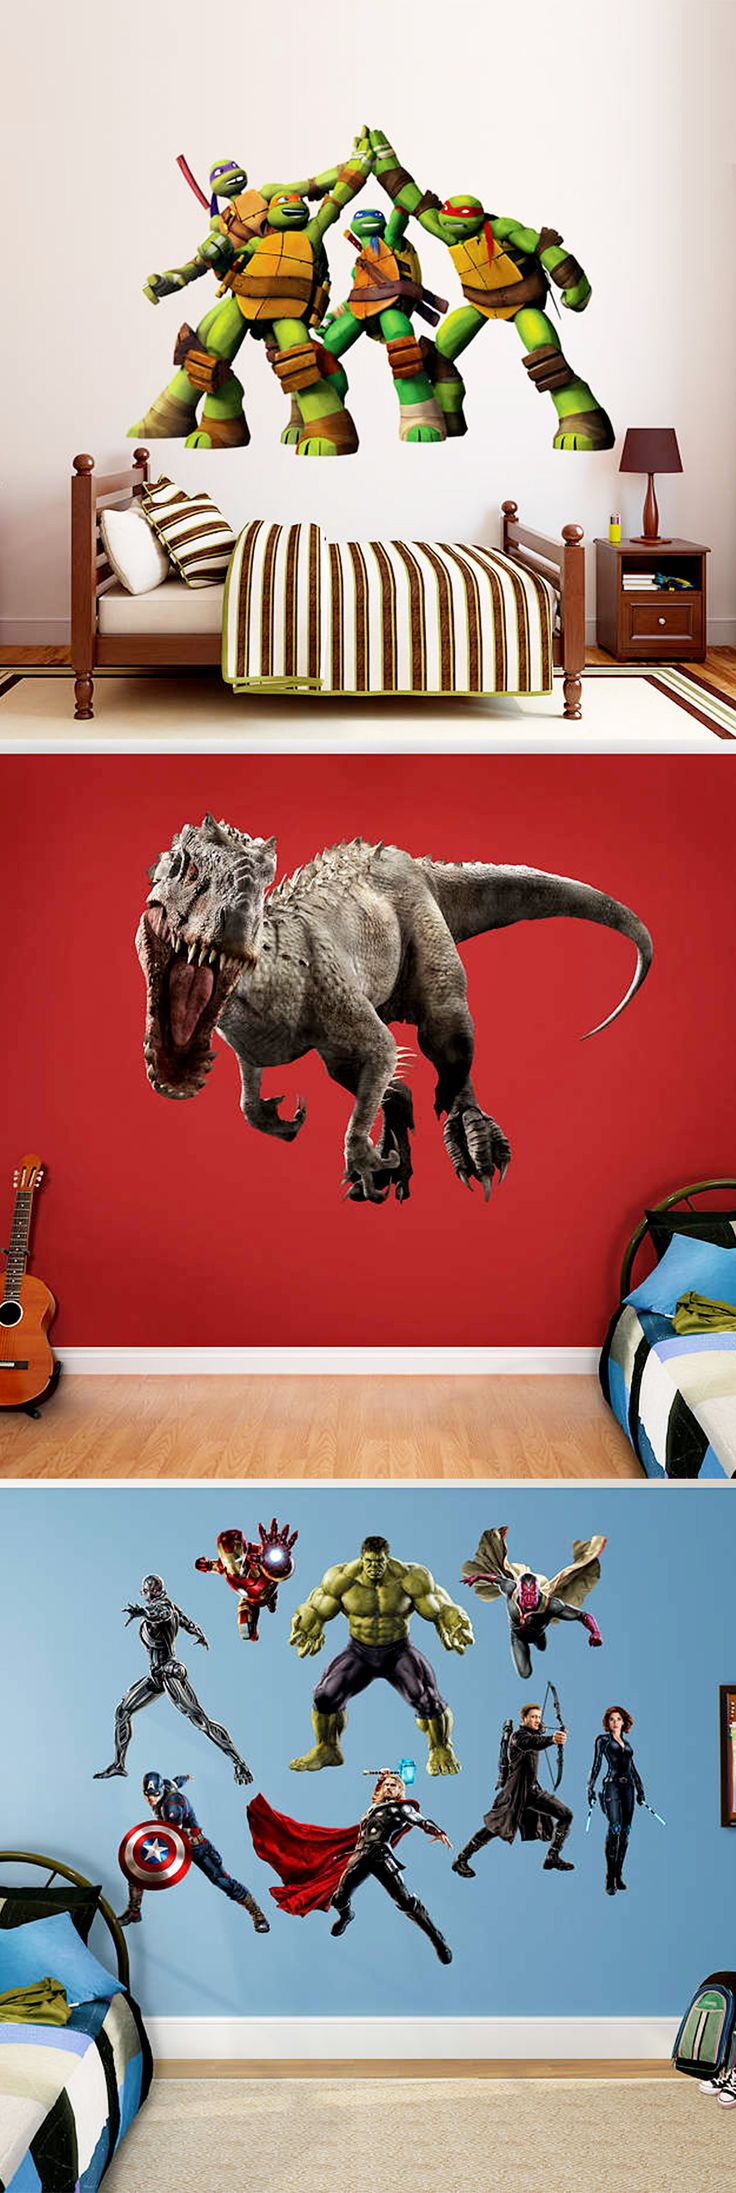 Make any room come to life with life-size Fathead Wall Decals!